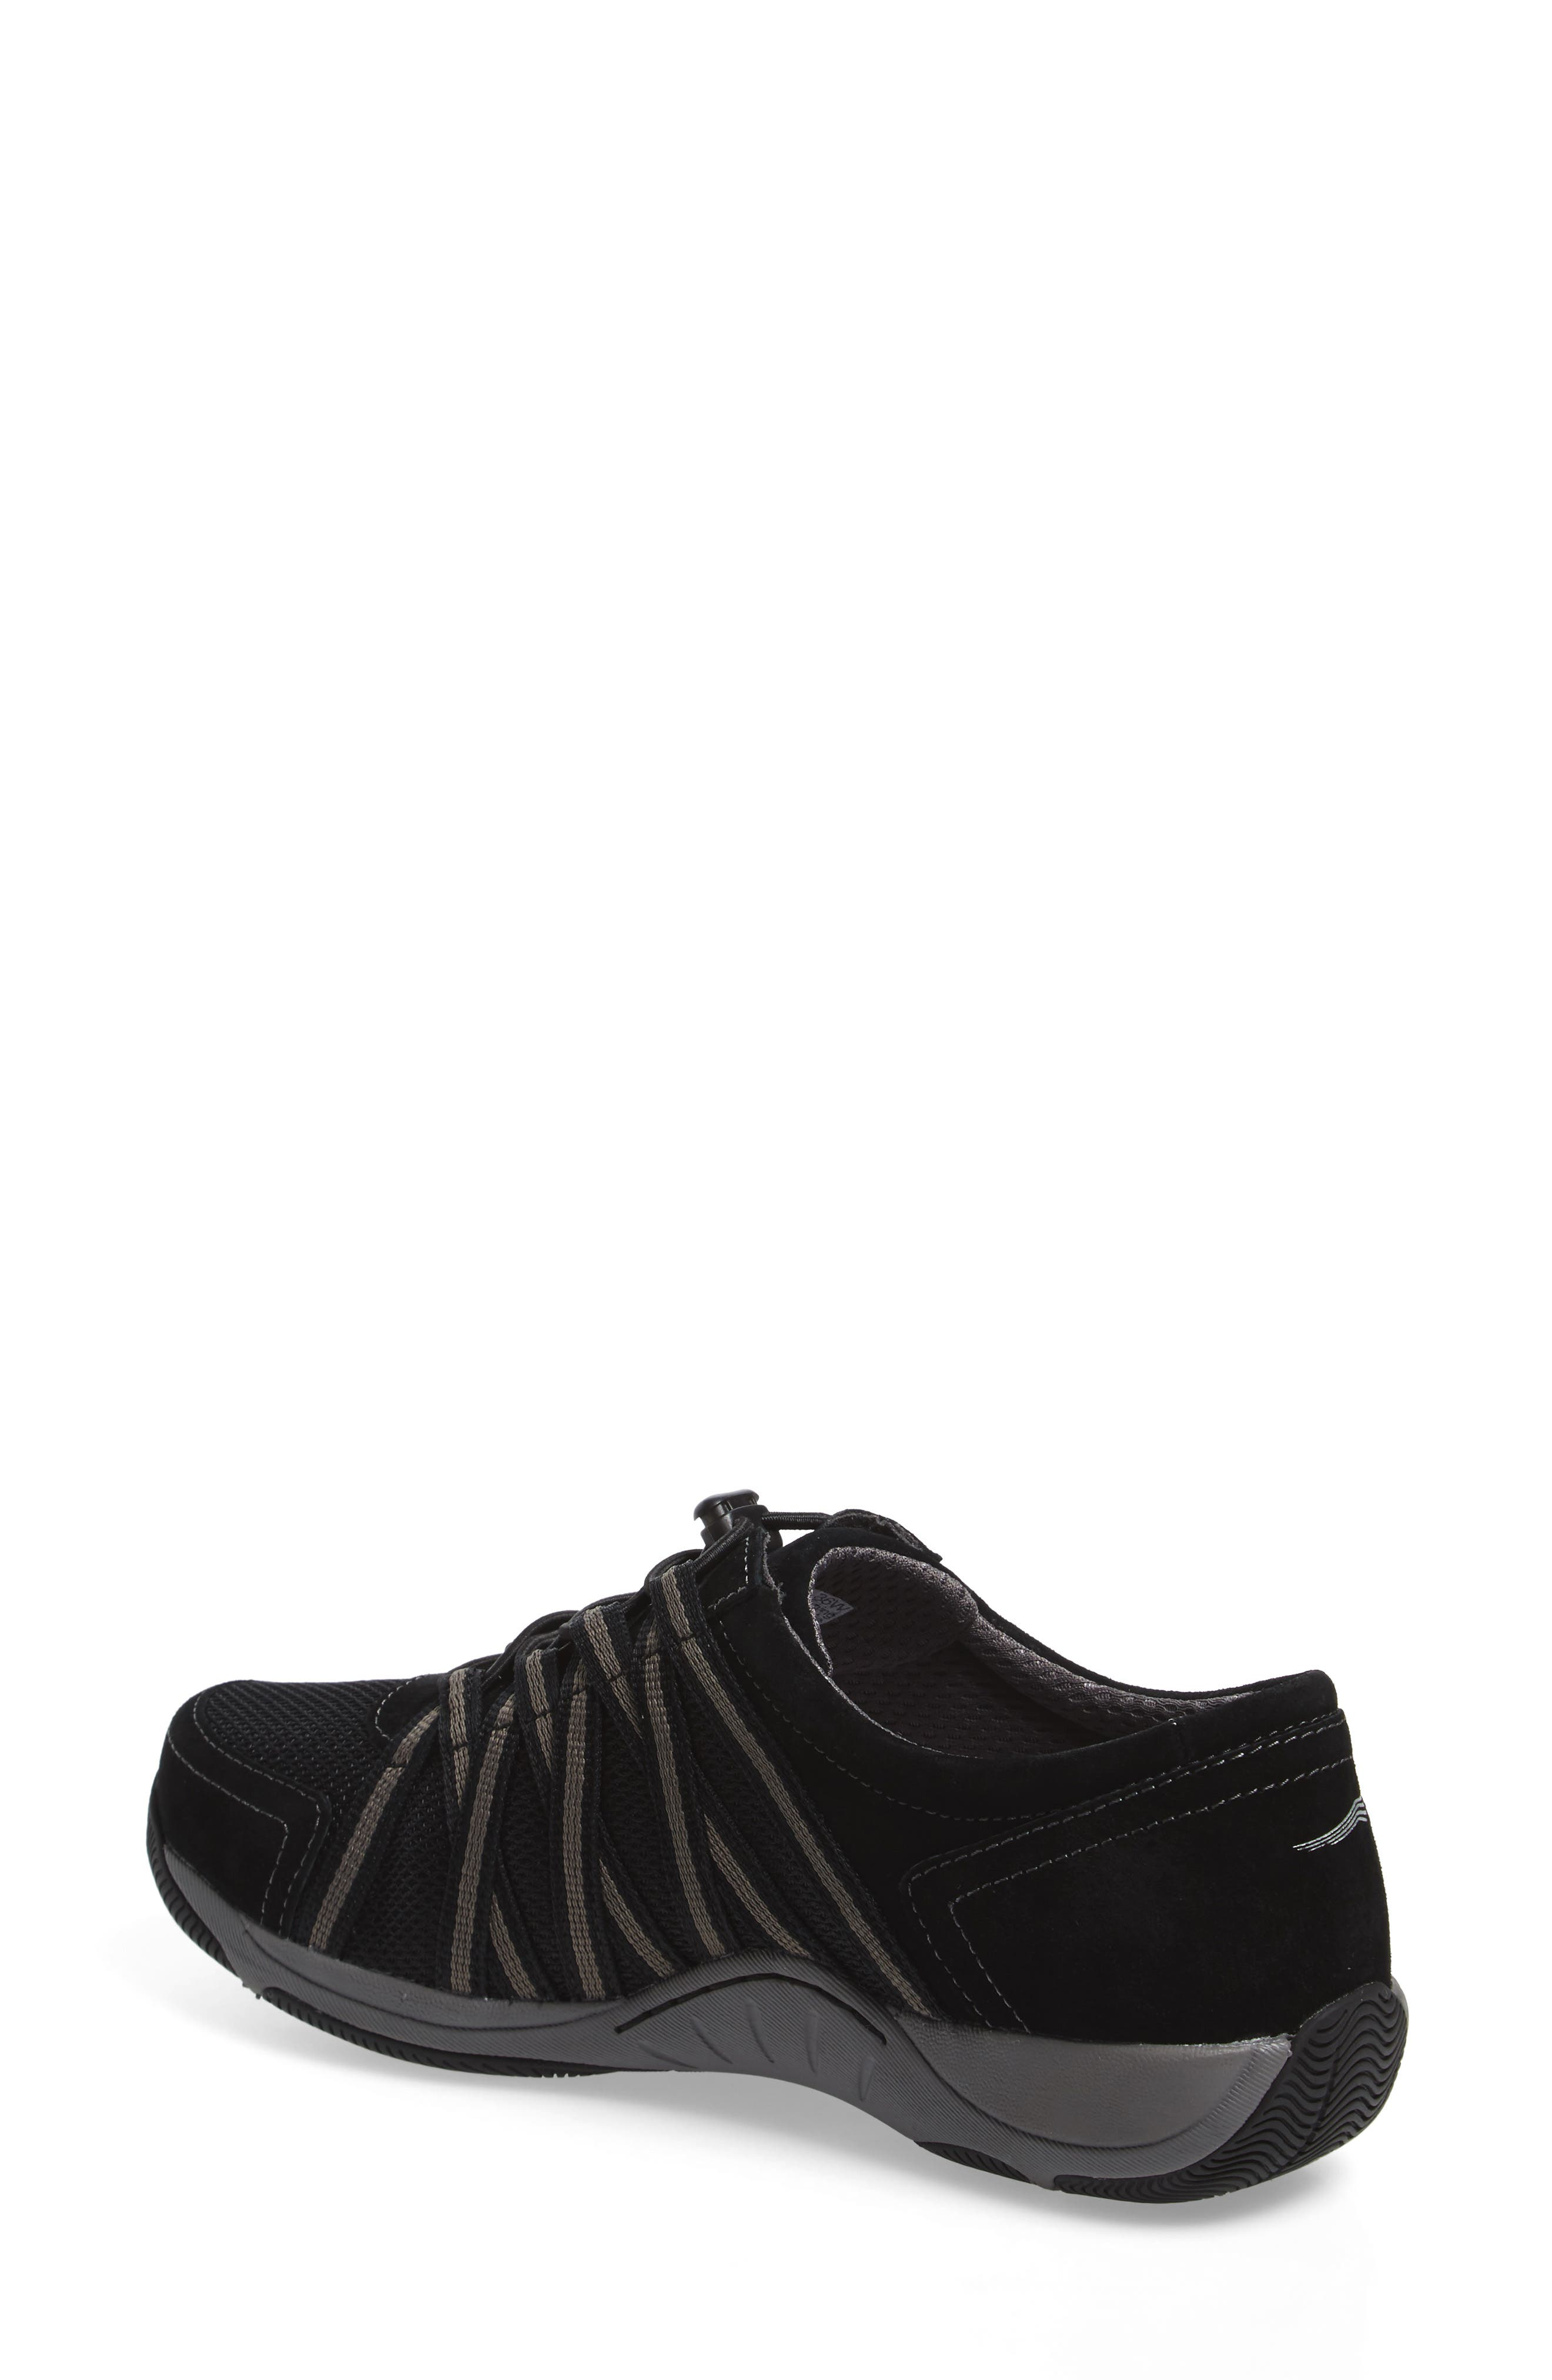 Halifax Collection Honor Sneaker,                             Alternate thumbnail 9, color,